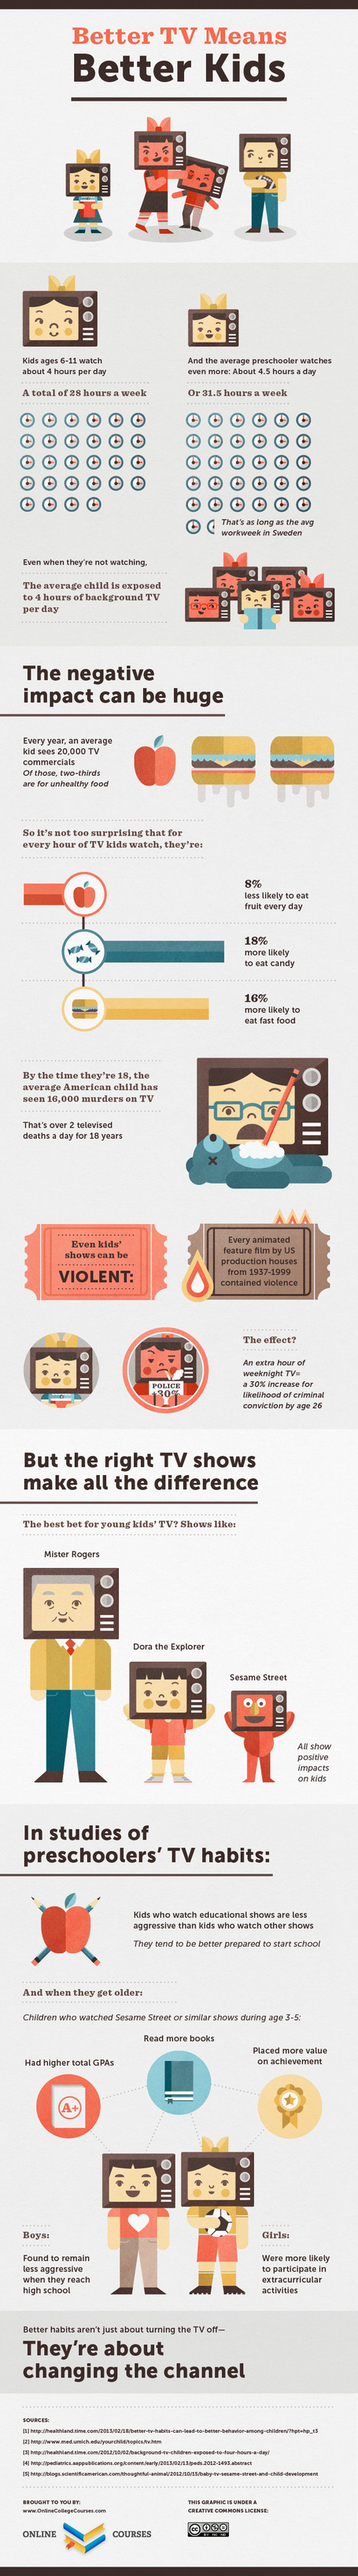 Good TV Habits Can Make Kids Smarter | Social Mercor | Scoop.it